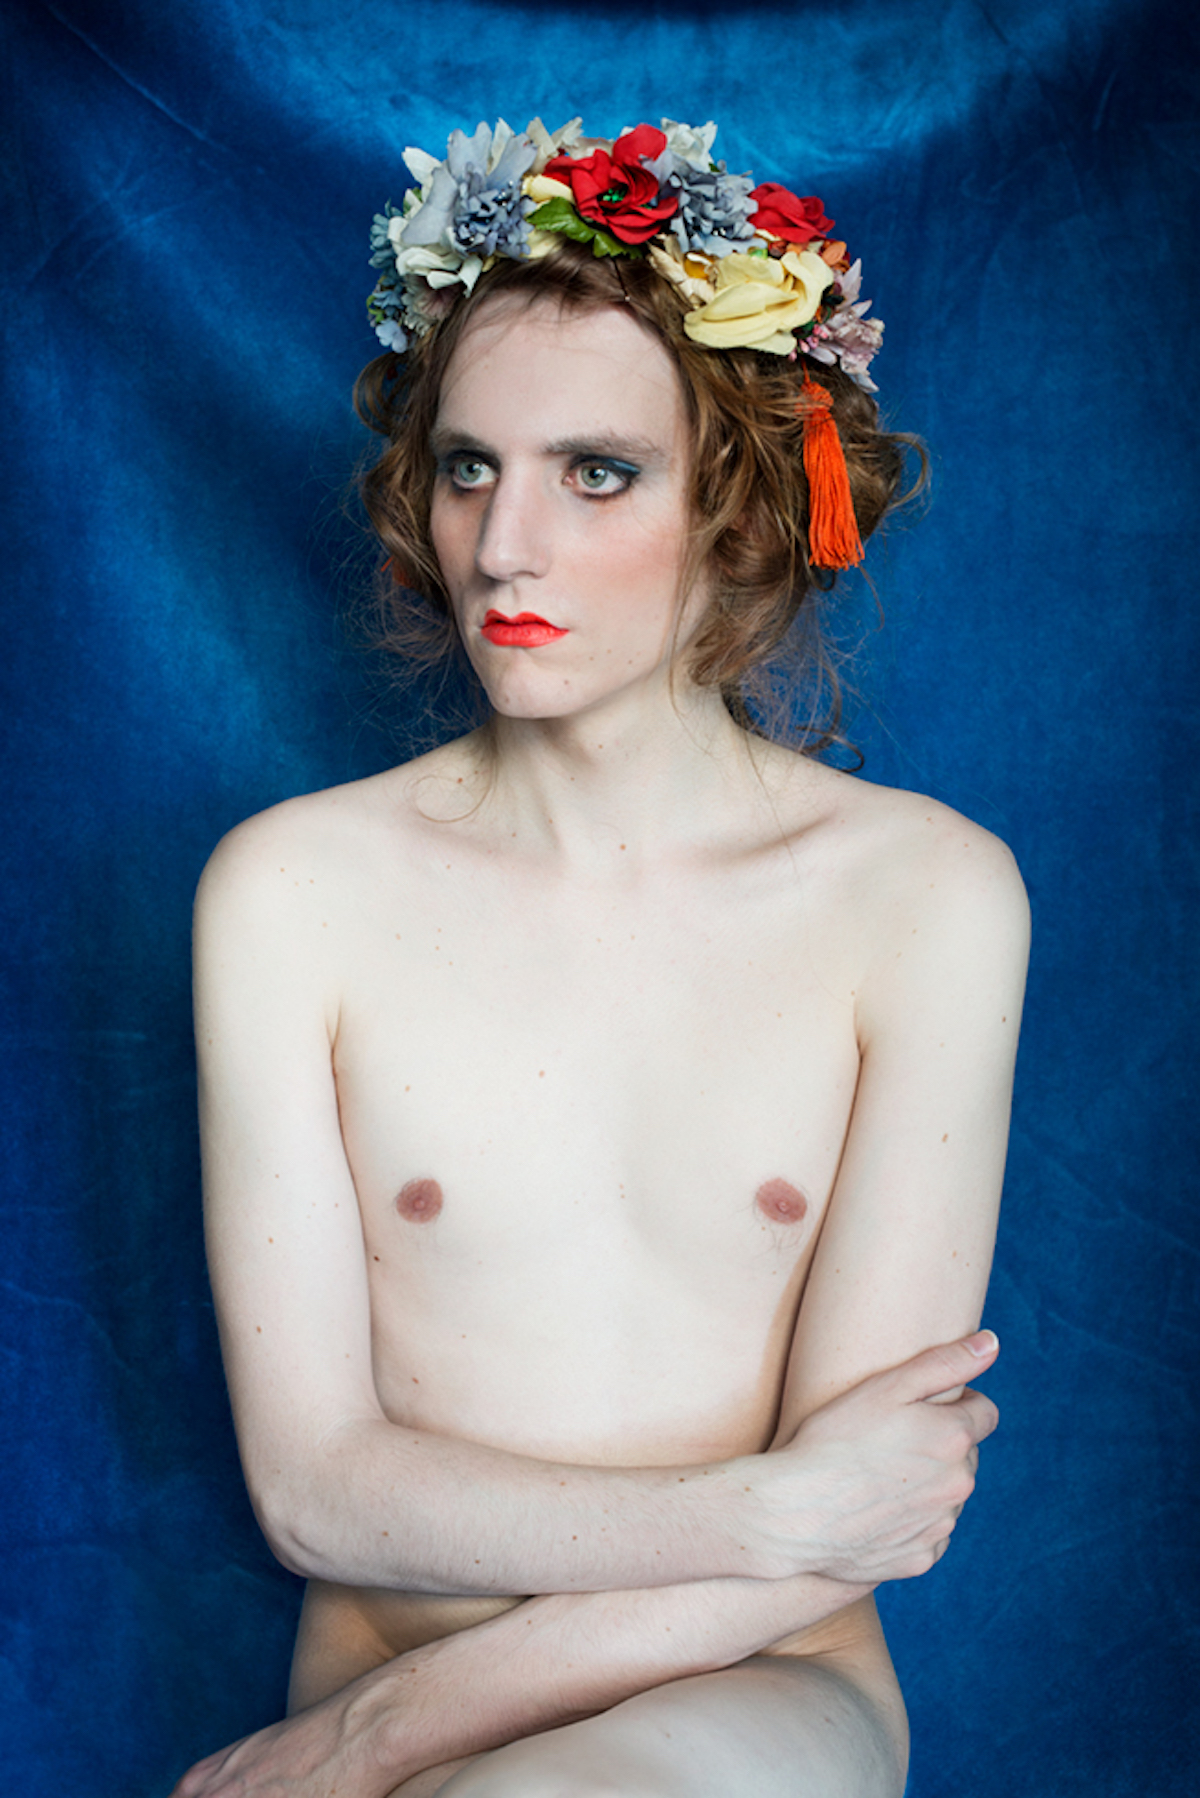 """<p """"="""""""">A photograph of a person sitting with legs and arms crossed and wearing a floral headband."""